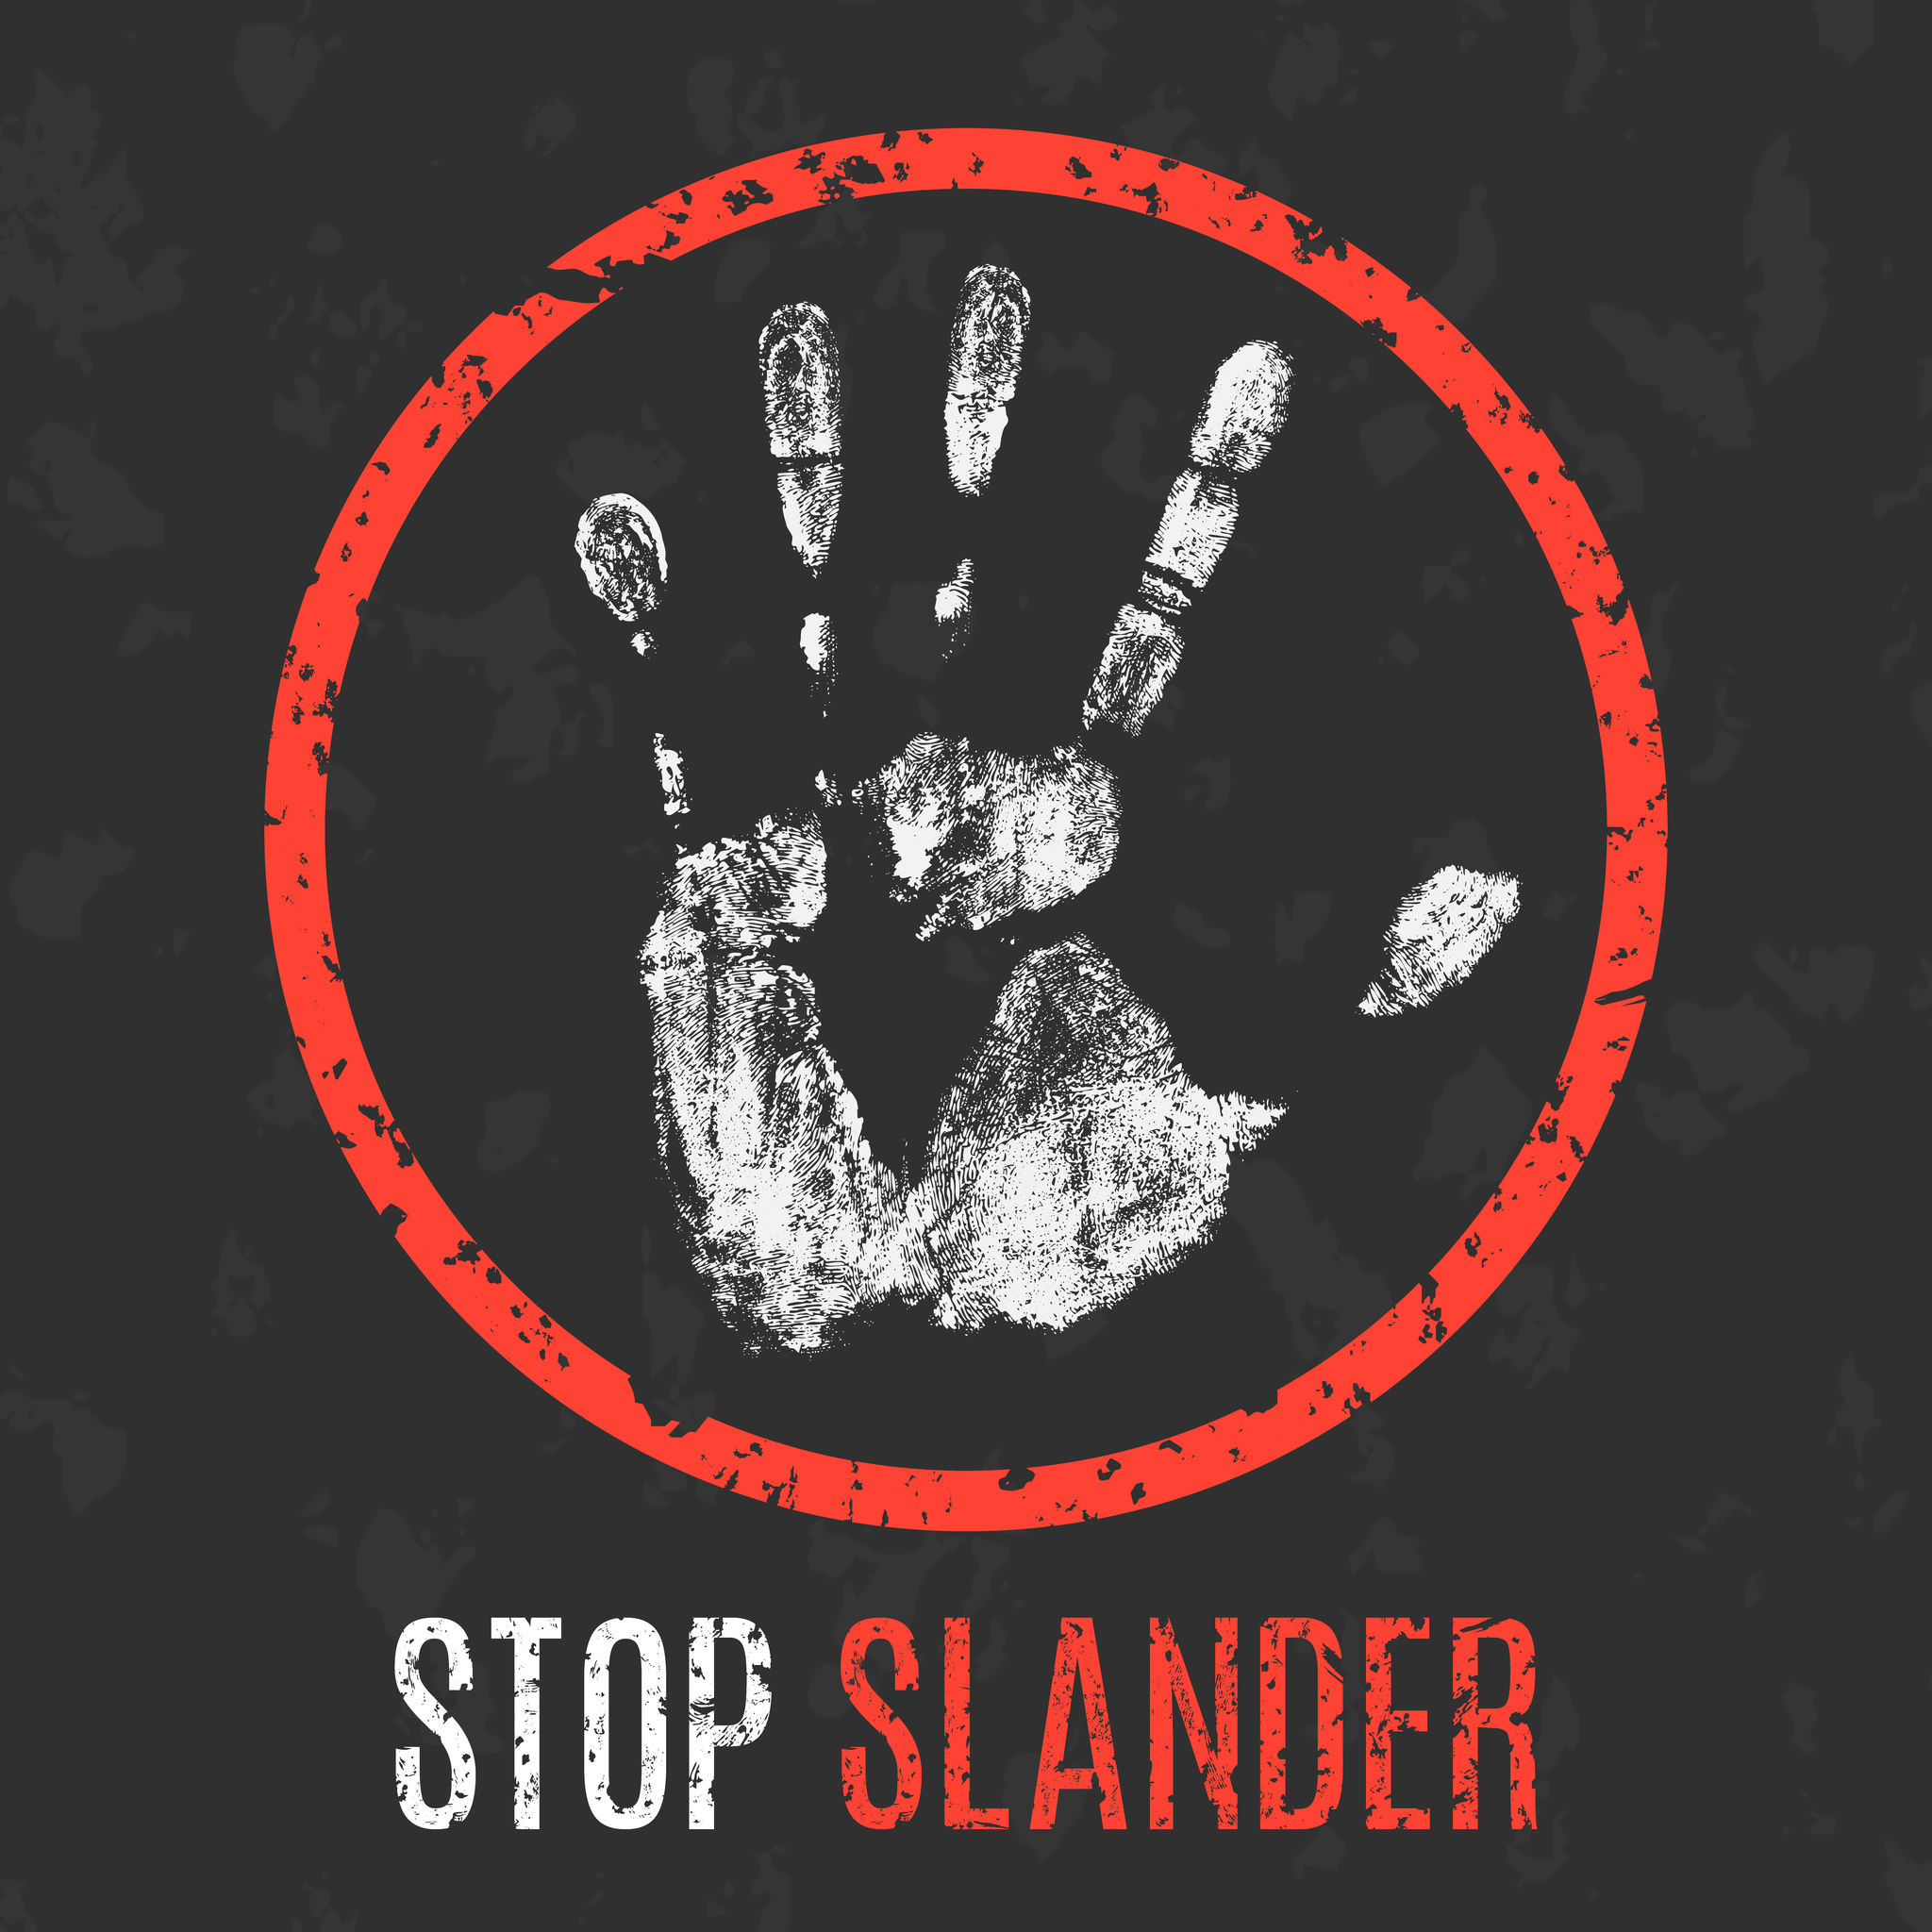 Stop Internet Slander, Defamation, Libel